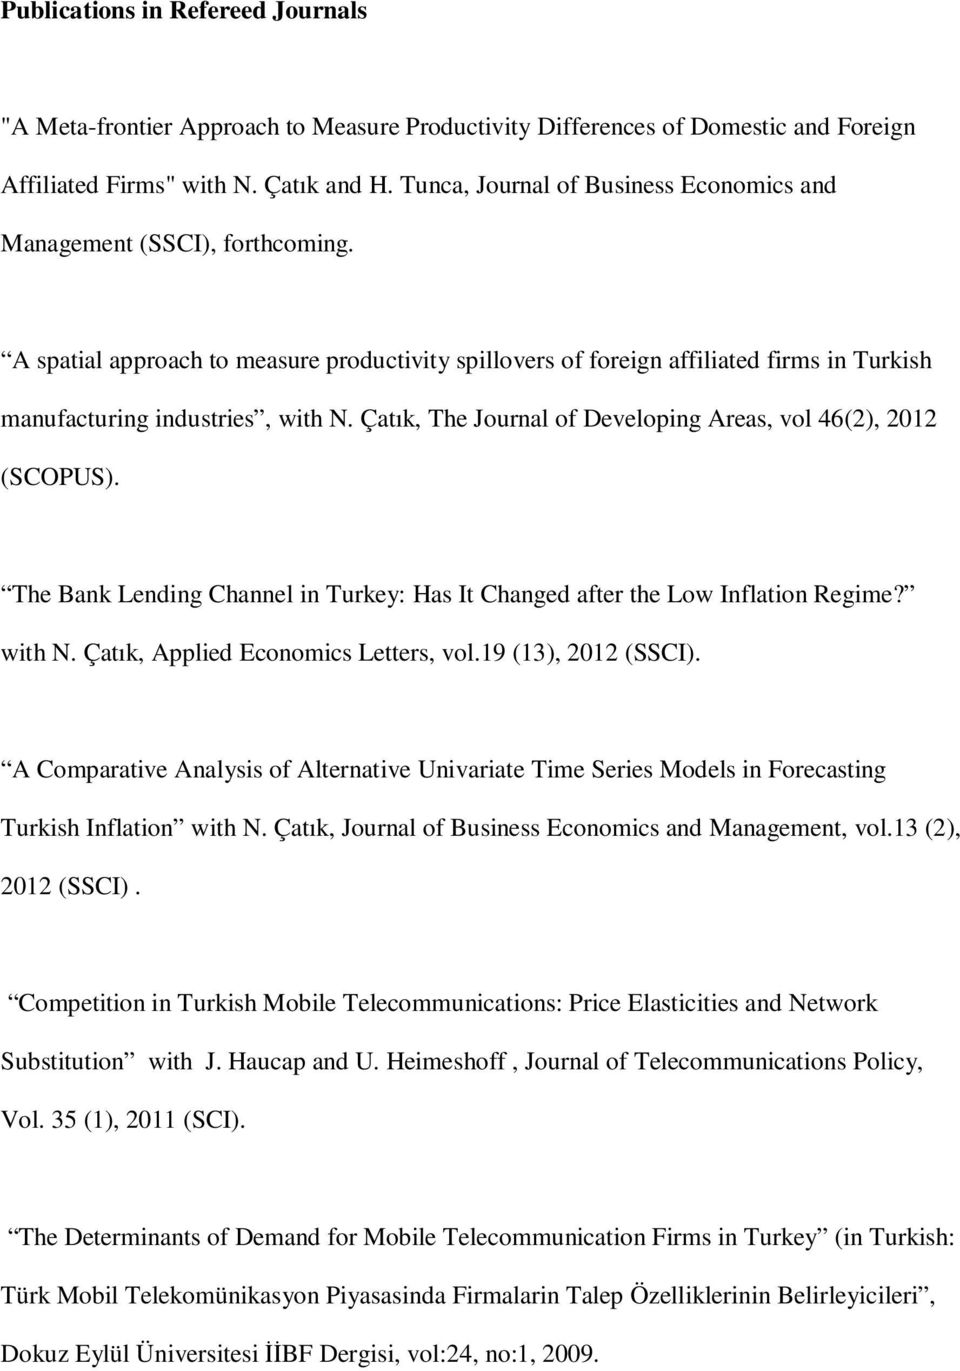 Çatık, The Journal of Developing Areas, vol 46(2), 2012 (SCOPUS). The Bank Lending Channel in Turkey: Has It Changed after the Low Inflation Regime? with N. Çatık, Applied Economics Letters, vol.